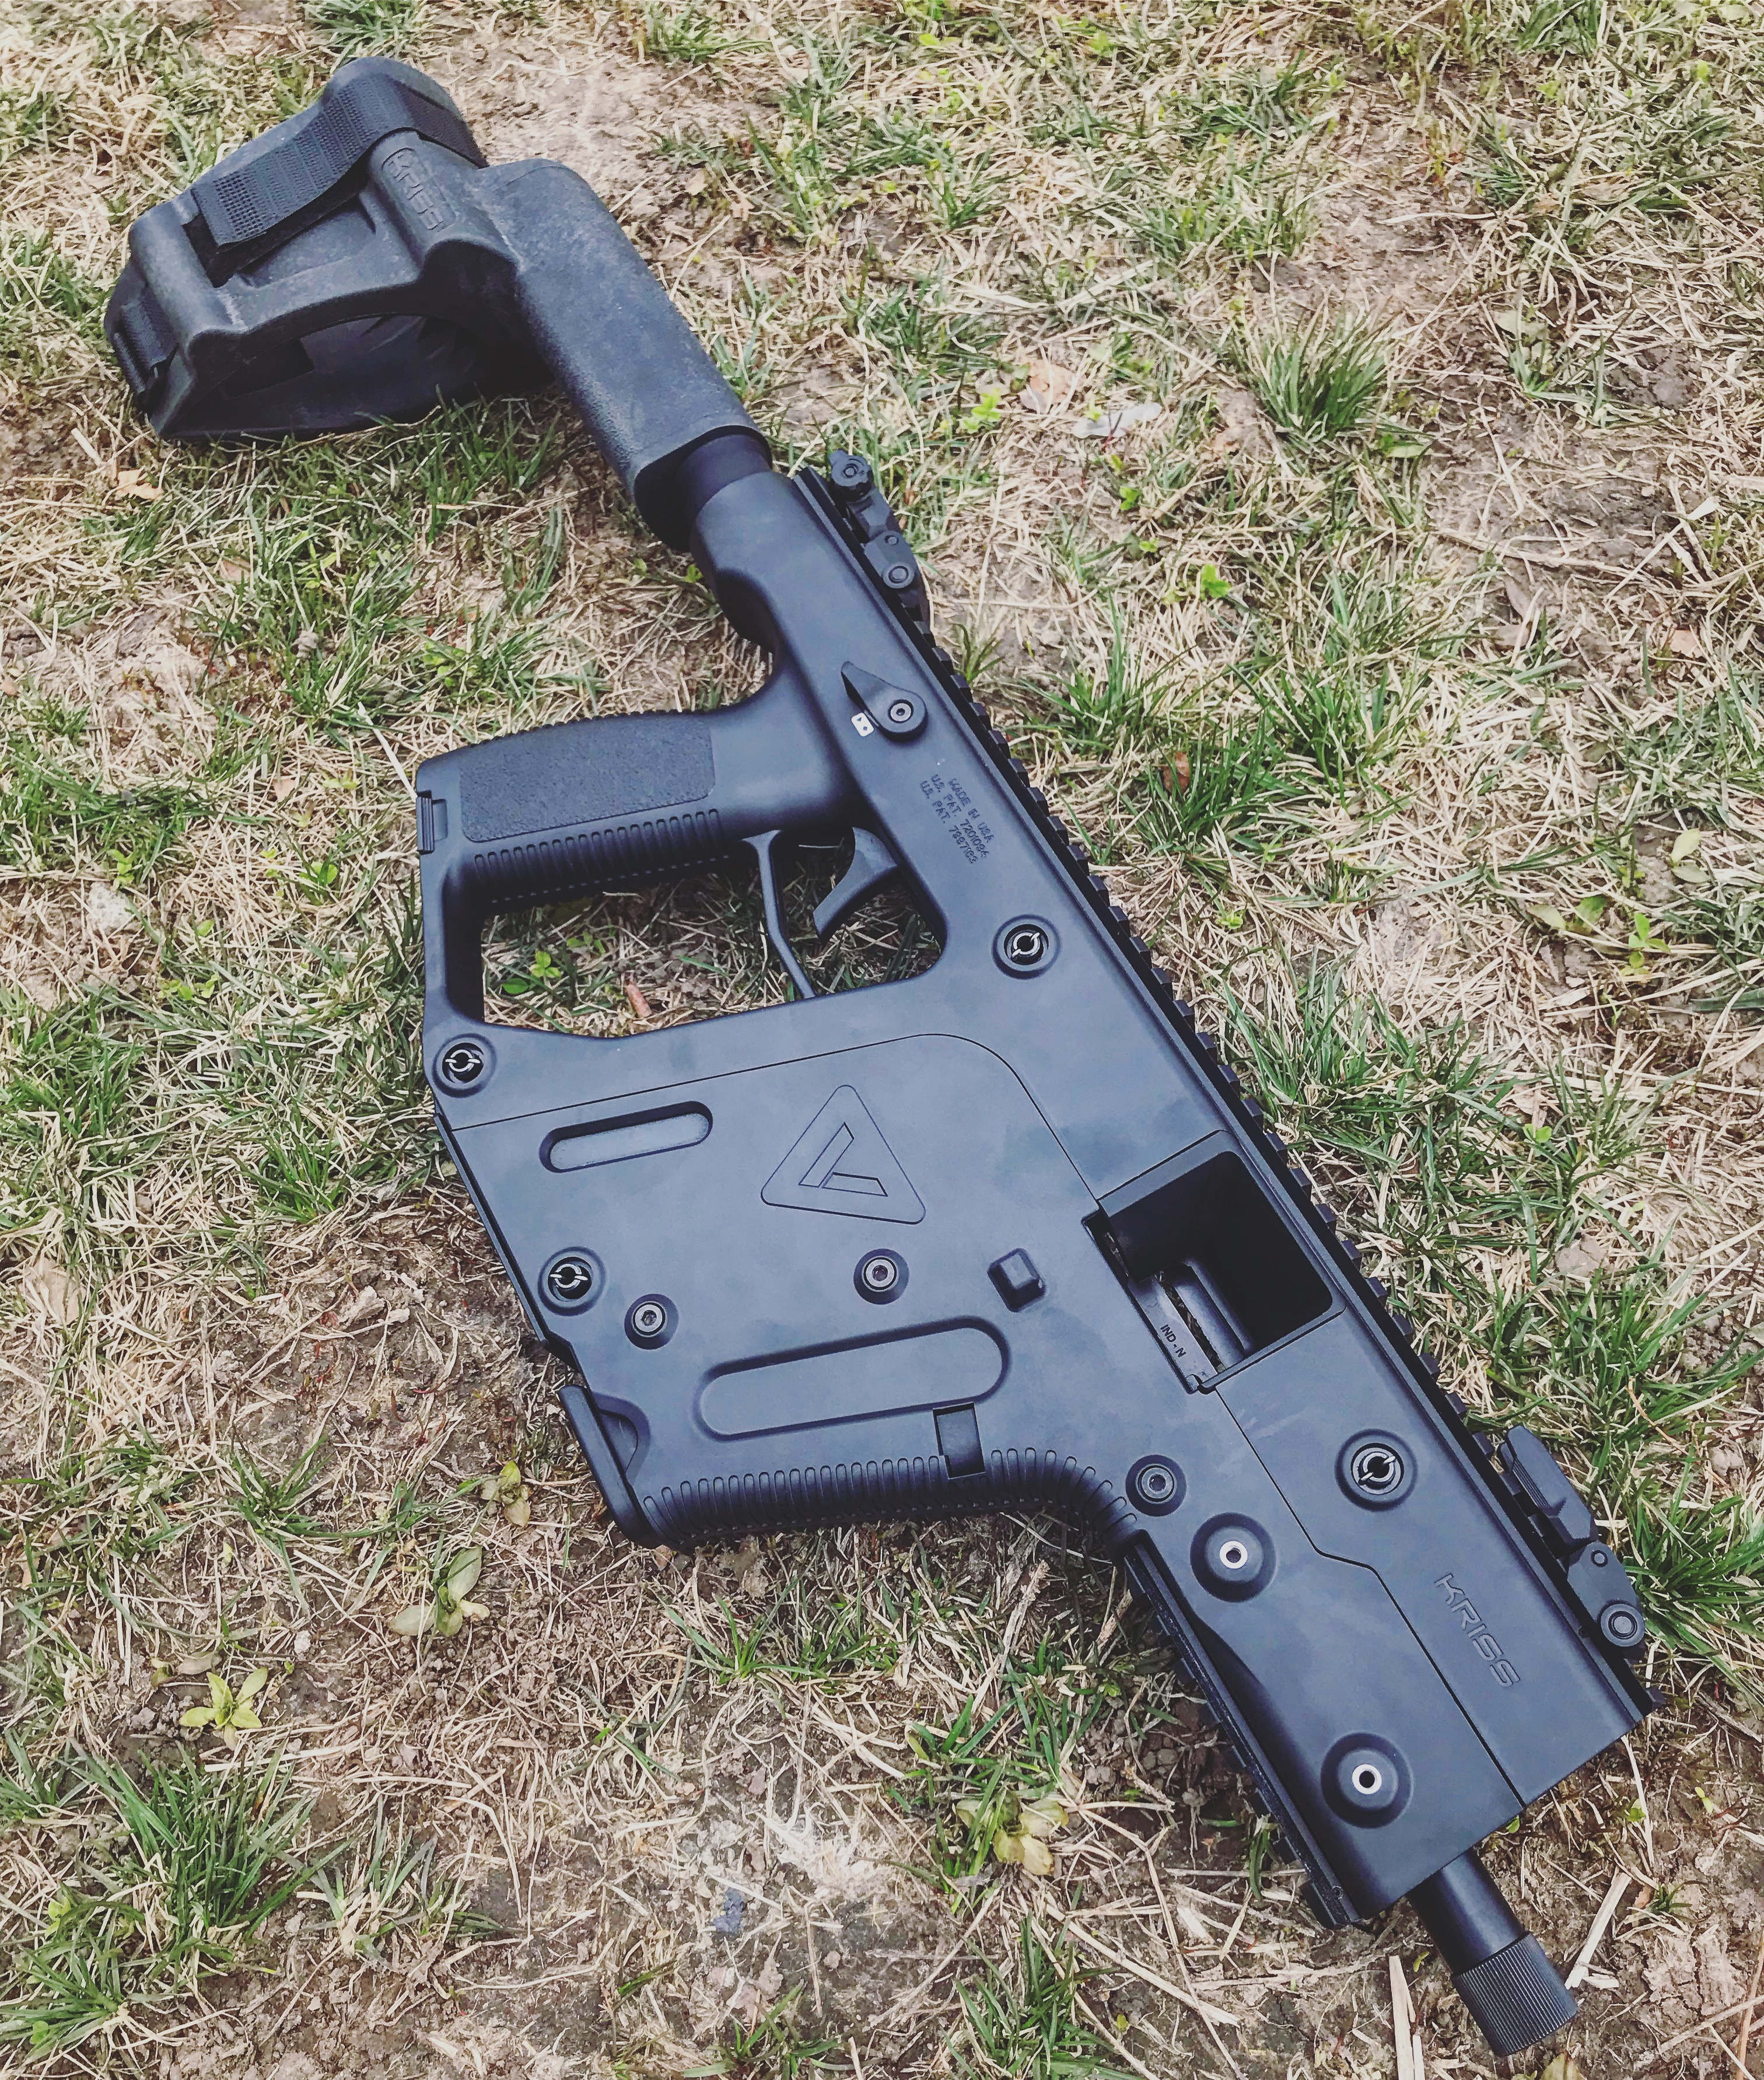 For sale - Used KRISS Vector 9mm Gen 2 -$1000